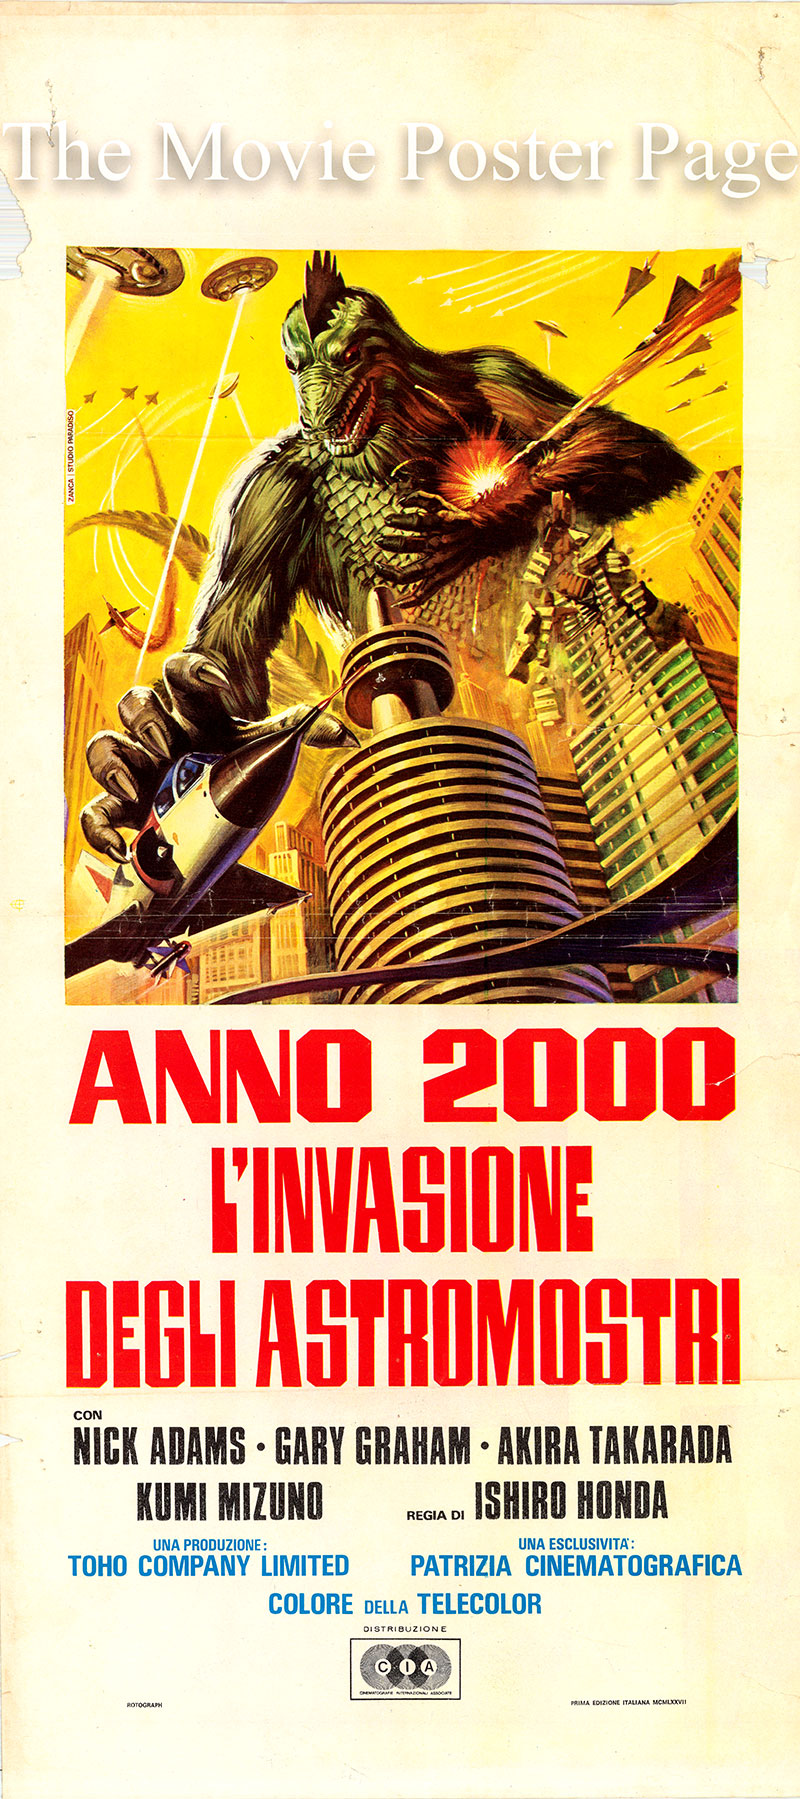 Pictured is an Italian locandina promotional poster for the 1965 Ishiro Honda film Godzilla vs. Monster Zero starring Nick Adams.